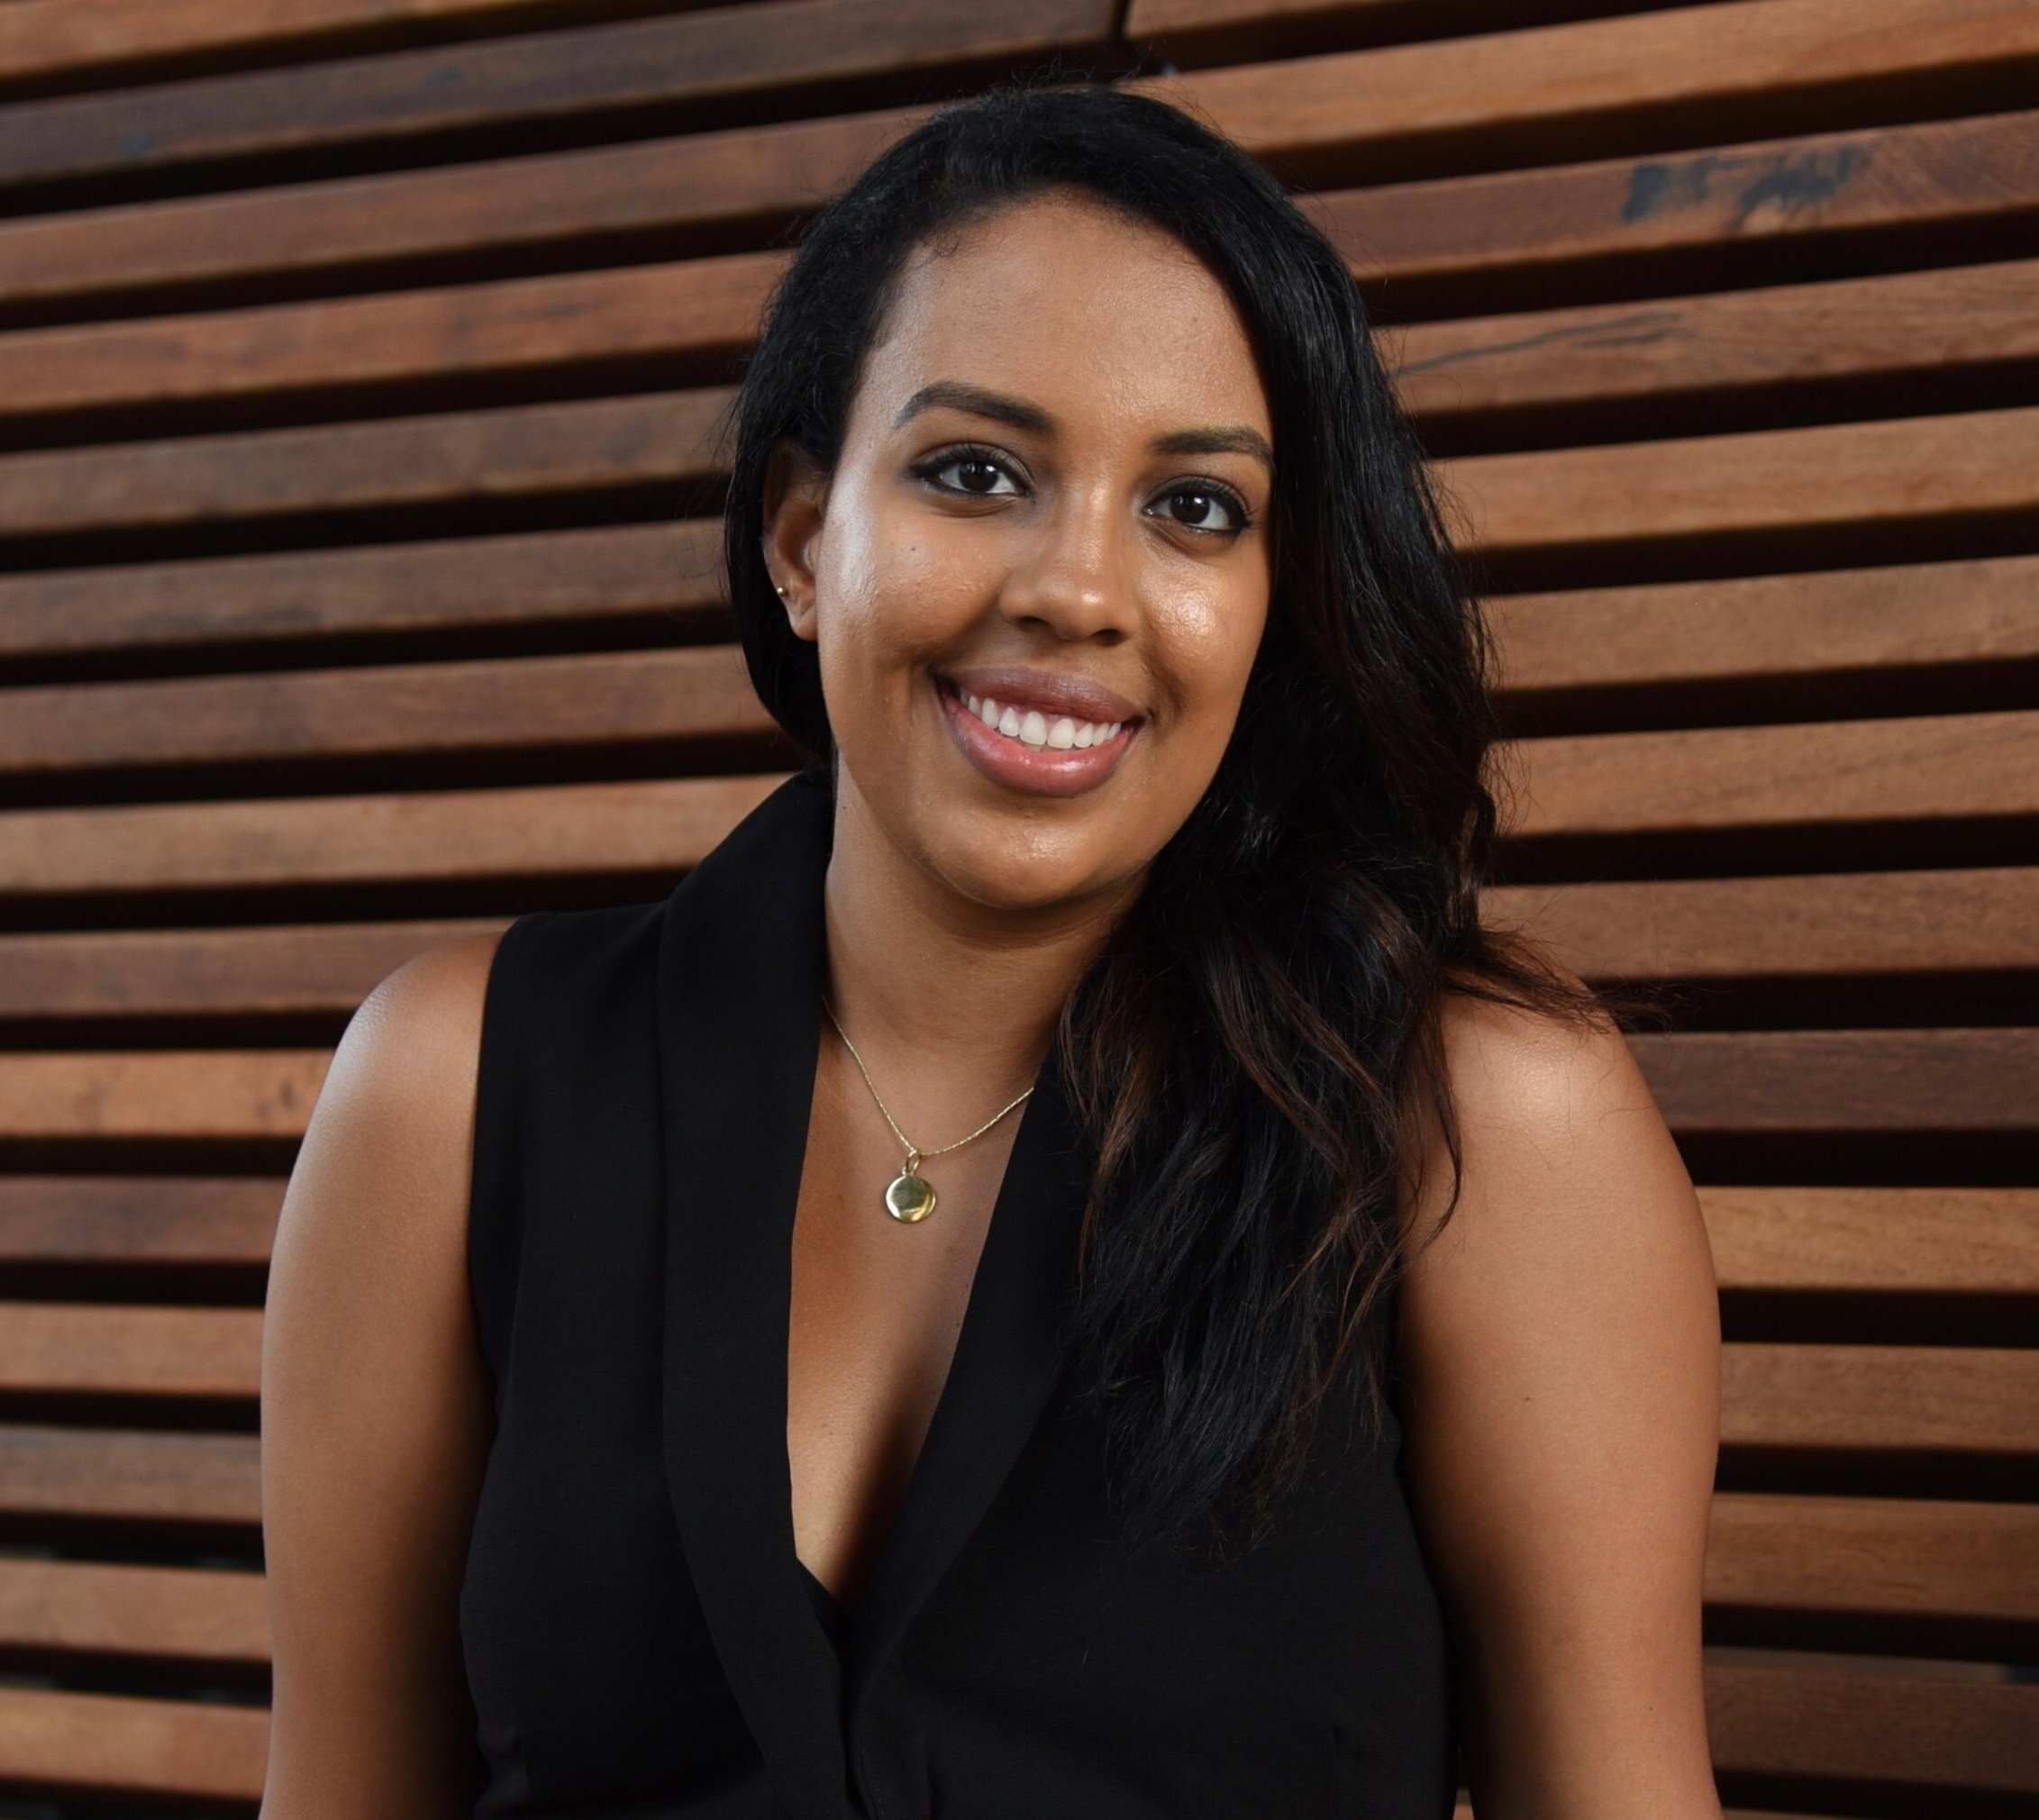 Rahel Tekola, Co-founder   Rahel co-founded Learnabi, an ed tech venture in June, 2017 when she saw a resource and study skills gap while teaching standardized testing classes in the Bronx. Rahel is no stranger to education methods that fail to meet students' needs as she understands this from her own academic experience, which inevitably led her to develop personalized approaches to learning.  Prior to Learnabi, Rahel has worked as a consultant. In this role, she advised organizations, endowments, foundations and philanthropies all over the world on high-level organizational strategy, community economic development, on-the-ground special projects to racial and equity-based grantmaking and investments. Rahel has worked across many industries and sectors including local and federal government, non-profit, consultancy and philanthropy. Rahel's most recent philanthropic work was with the John A. Reisenbach Foundation and the Rockefeller Foundation where she focused on community economic development at the intersection of intentional philanthropy. At The Rockefeller Foundation, Rahel's work focused on strategy and planning on how to unlock private capital gains in low-income area investments, known as the national Opportunity Zones project. During her time at The John A. Reisenbach Foundation, as a Program Officer, Rahel created the foundation's first impact investing Accelerator project. She also managed the foundations' grants and programs portfolio. Before moving to New York City, Rahel worked for The Family Place, the largest service providing domestic violence agency in Texas. In this role, she helped lead a $20M capital campaign, worked with the CEO to open the first men's domestic violence shelter in Texas and worked on a $7M community reinvestment act project with JPMorgan Chase. In addition to her role at The Family Place, Rahel served on the Mayor's Domestic Task Force, leading a city-wide lethality assessment program for family safety.  Rahel dedicated her ea